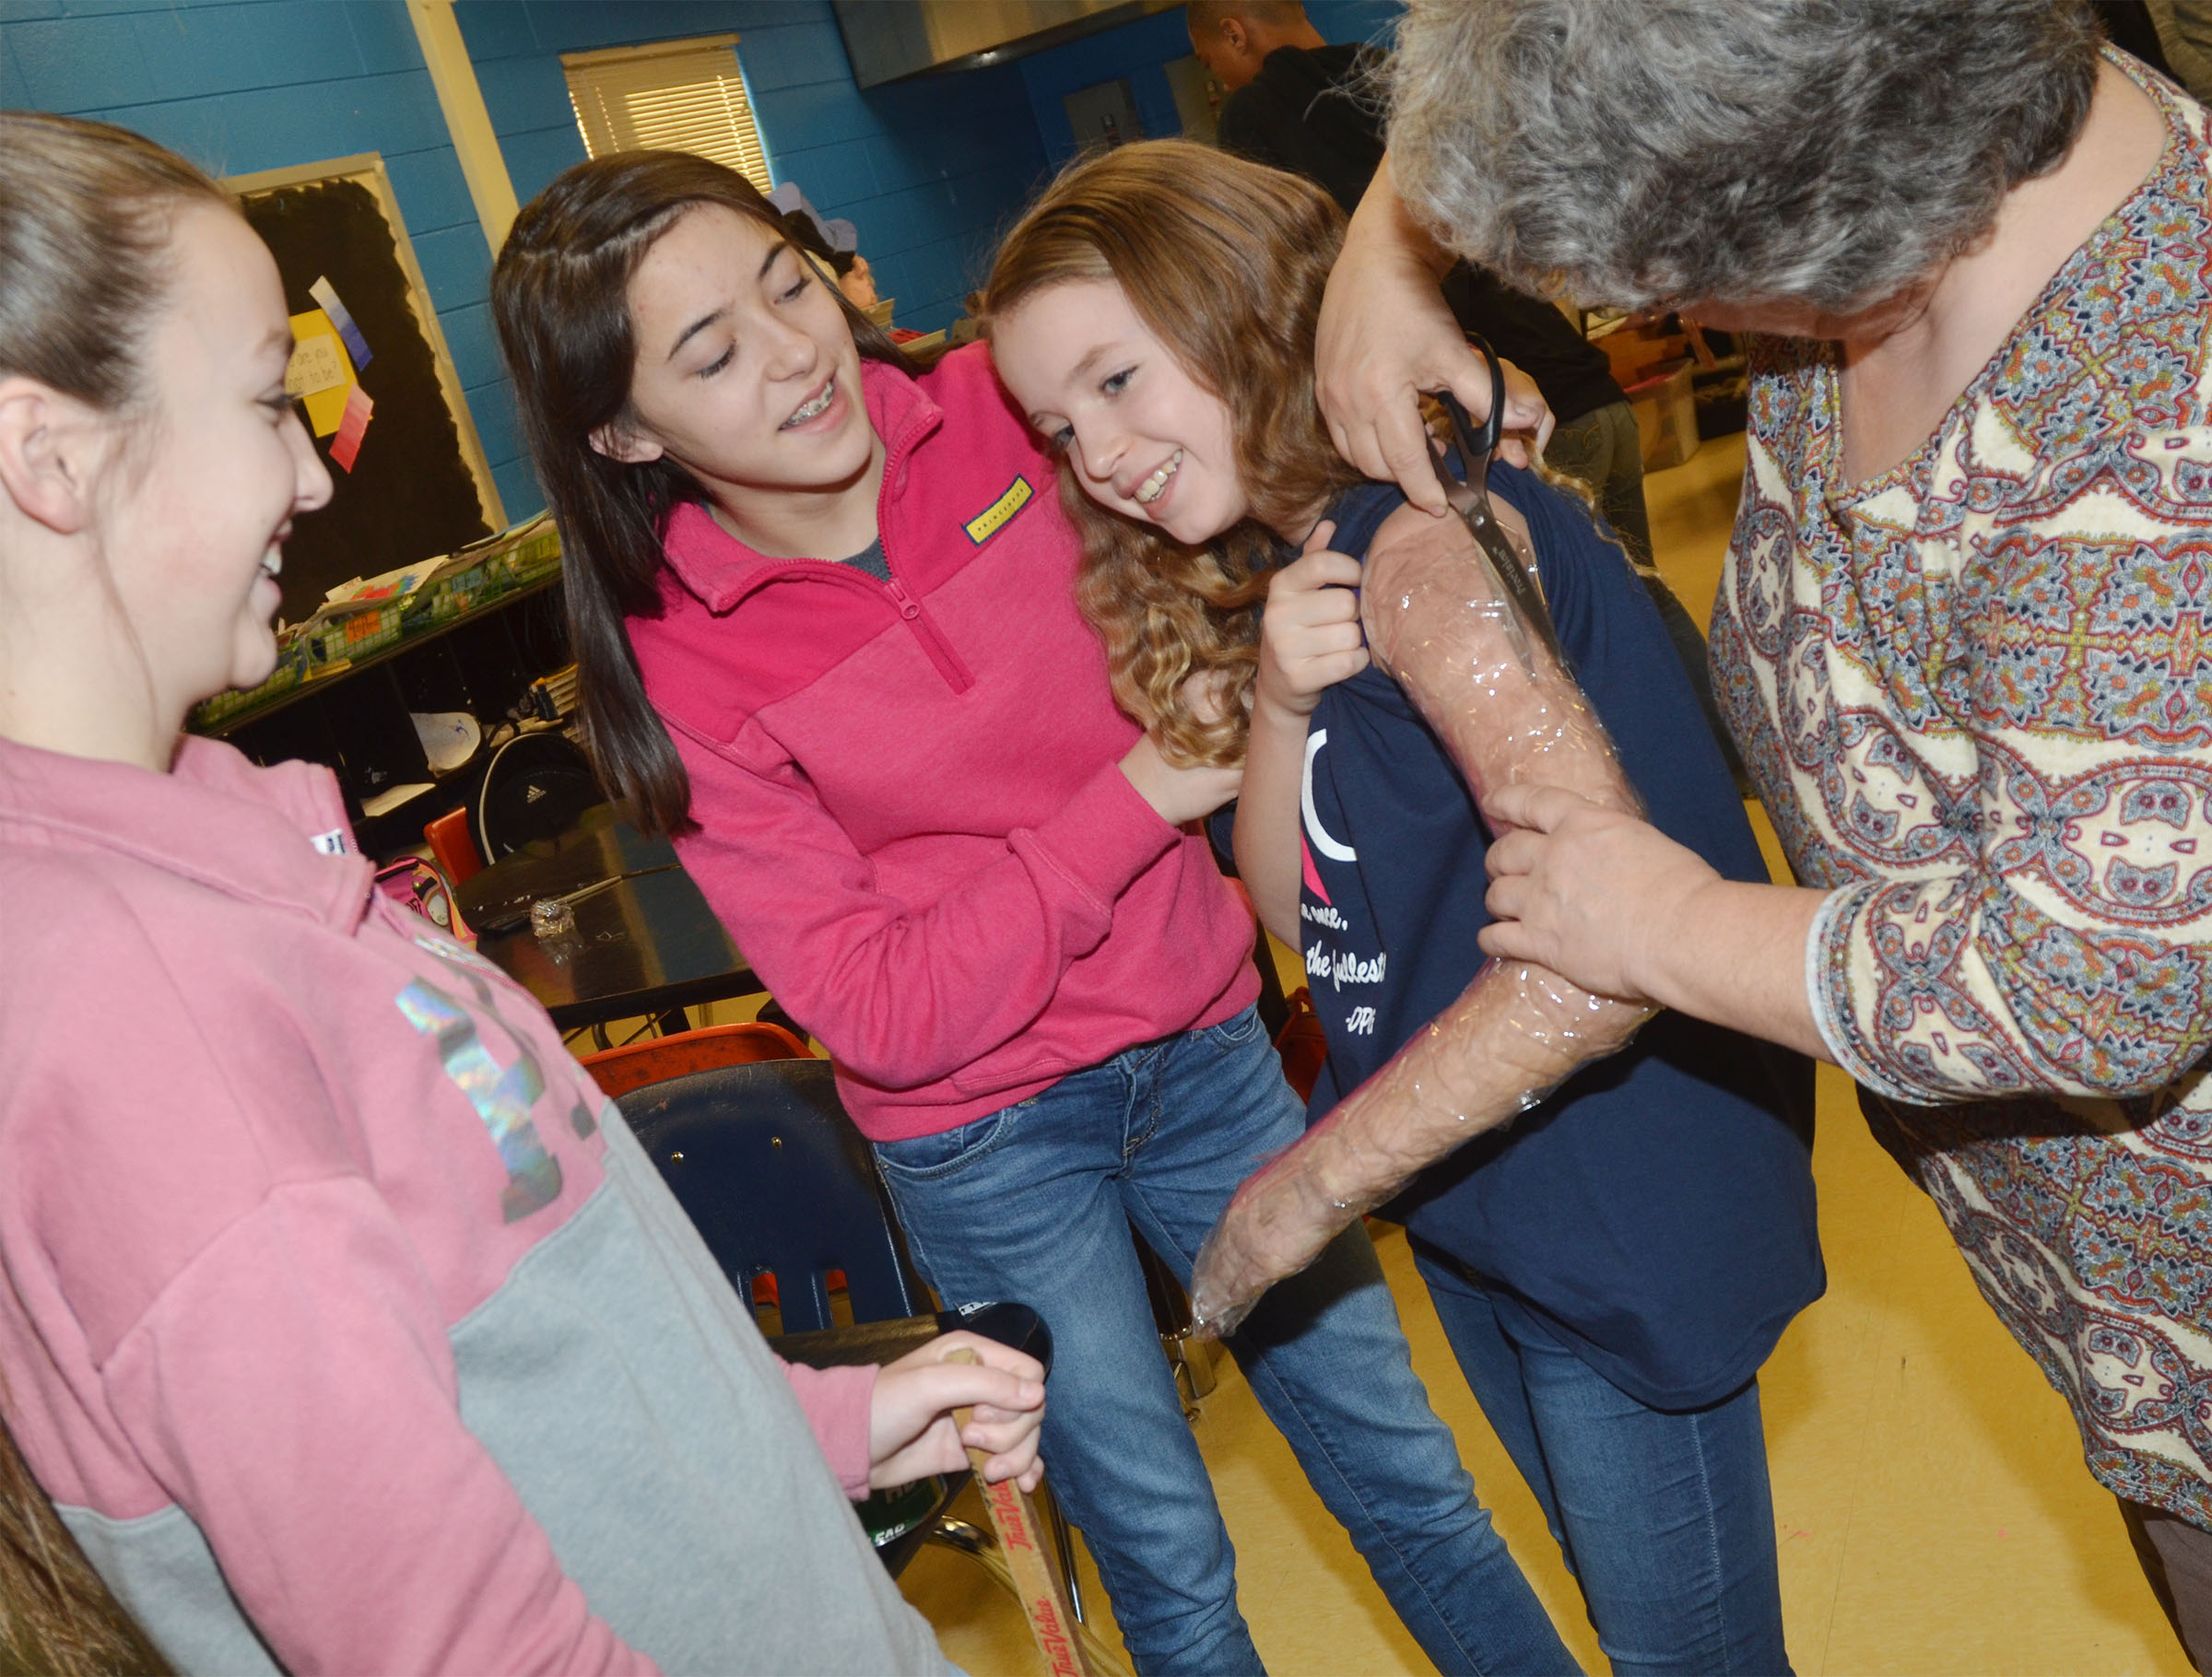 CHS art teacher Jo Ann Harris, at right, helps Campbellsville Middle School seventh-graders, from left, Lainey Watson, Kaylyn Smith and Rylee Petett as Petett's arm is cut out after it is taped.